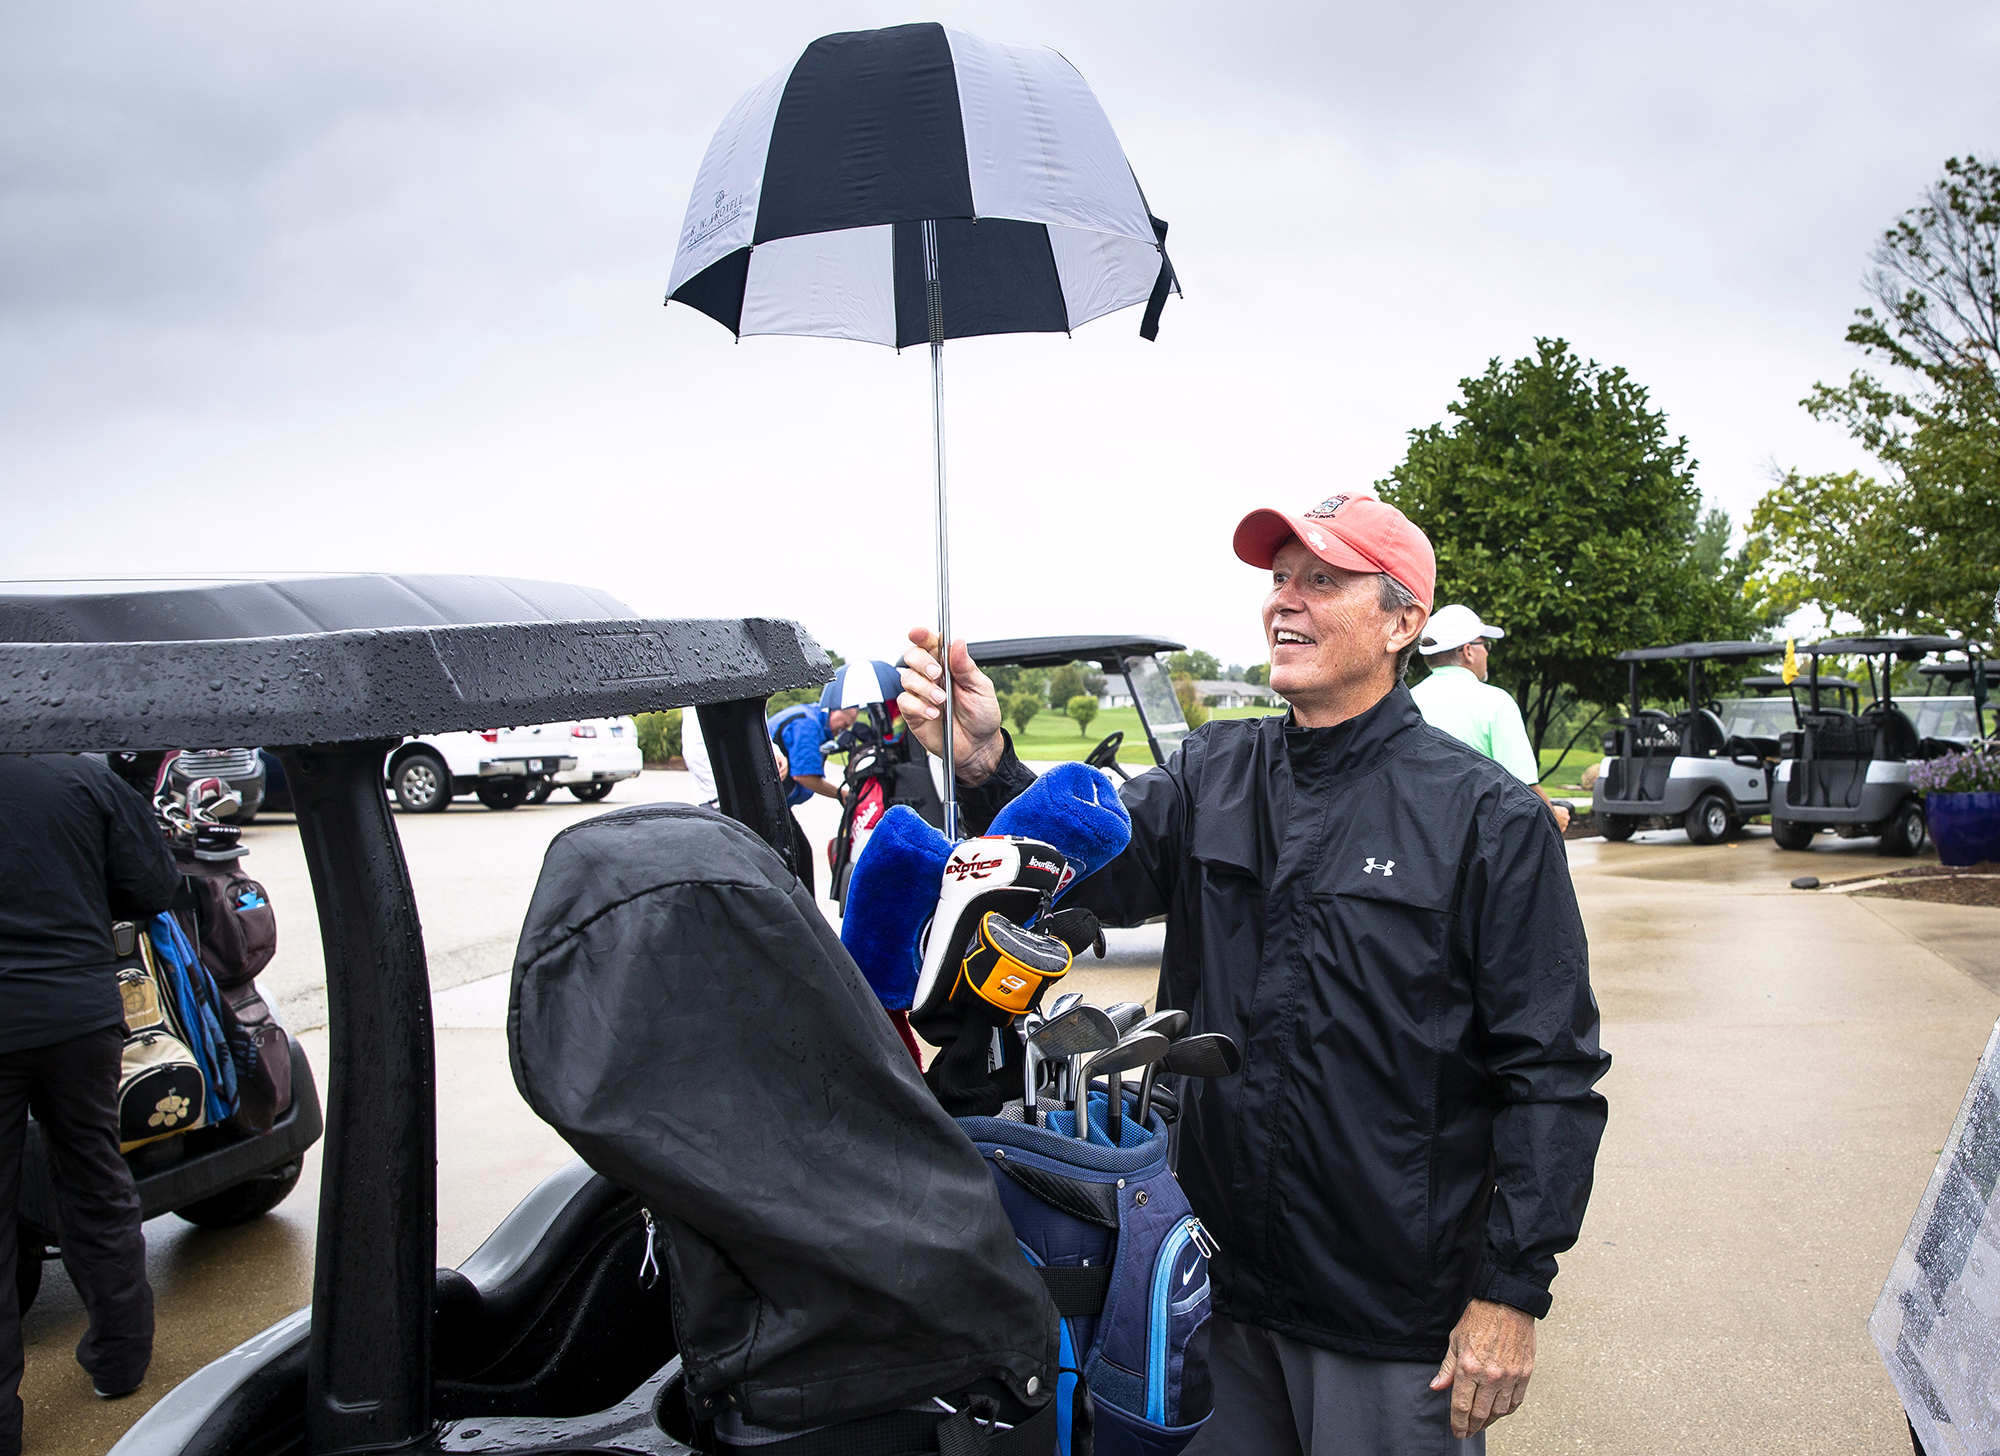 Ed Gvazdinskas deploys an umbrella over his golf clubs before starting out for the 28th annual Friend-in-Deed golf outing Friday, Sept. 7, 2018 at Panther Creek Country Club in Springfield, Ill. Close to 130 golfers signed up for this year's event, which raises money for the annual Christmas charity. [Rich Saal /The State Journal-Register]